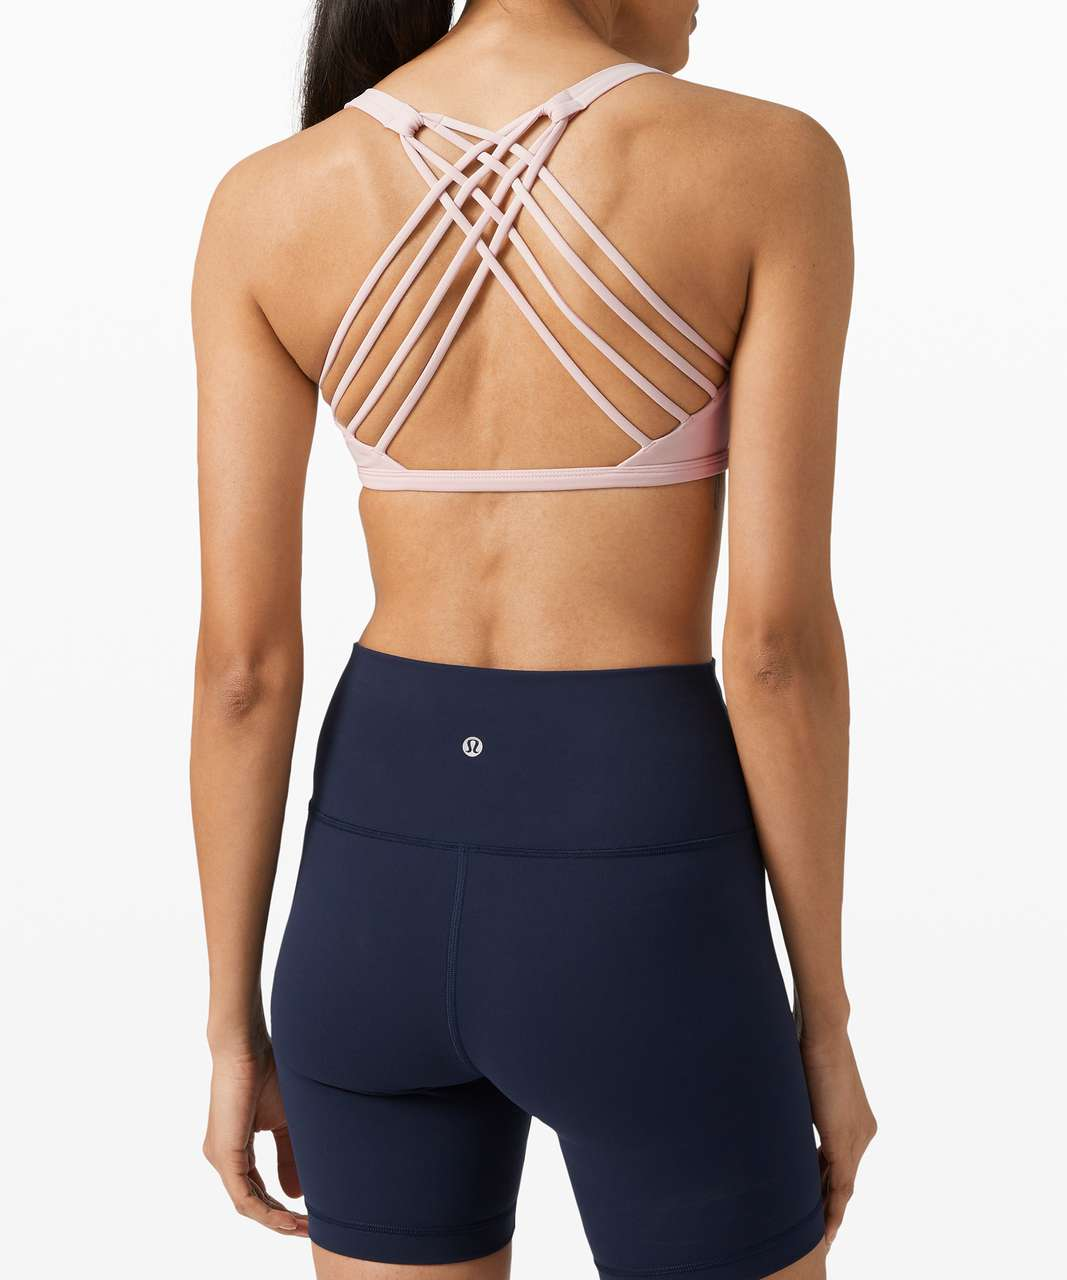 Lululemon Free To Be Bra Wild *Light Support, A/B Cup - Misty Pink